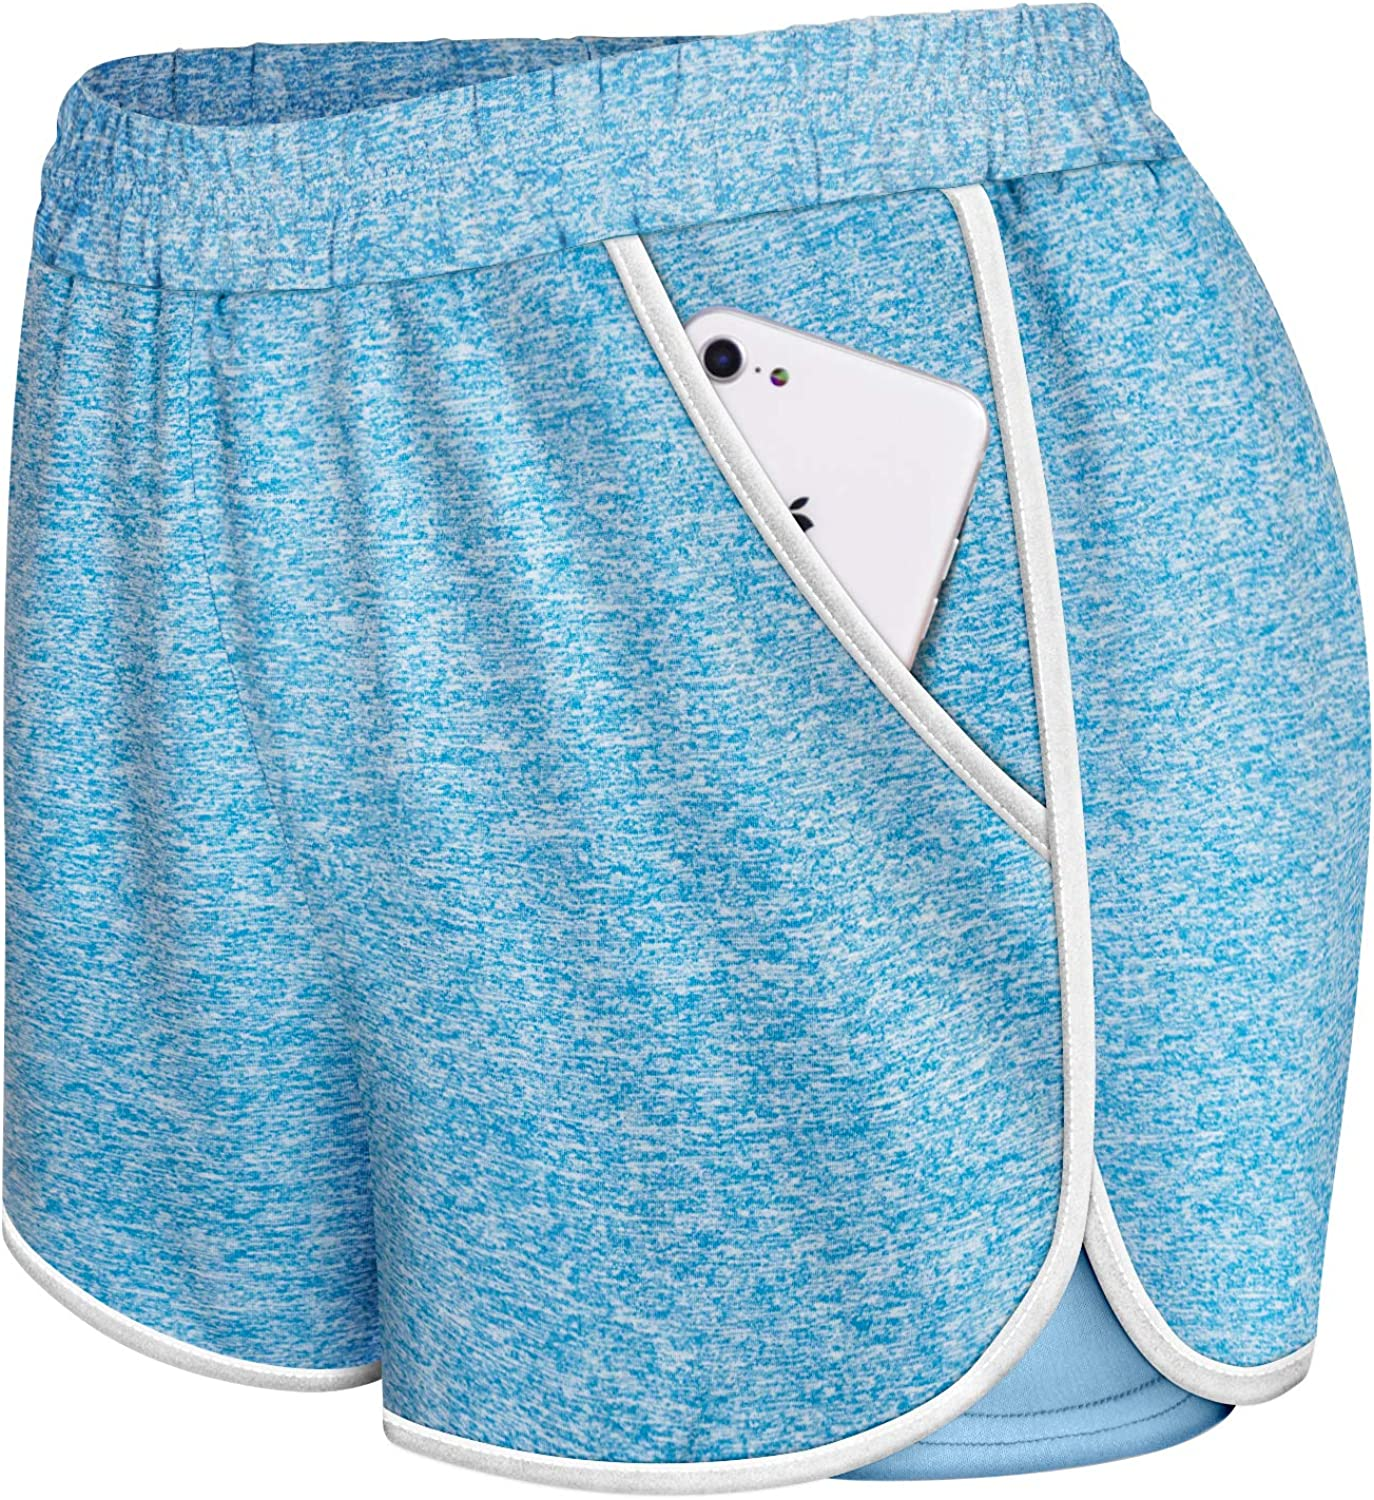 outlet Zamowoty Womens Sport Shorts Double Yoga discount Layers Workout Activewe